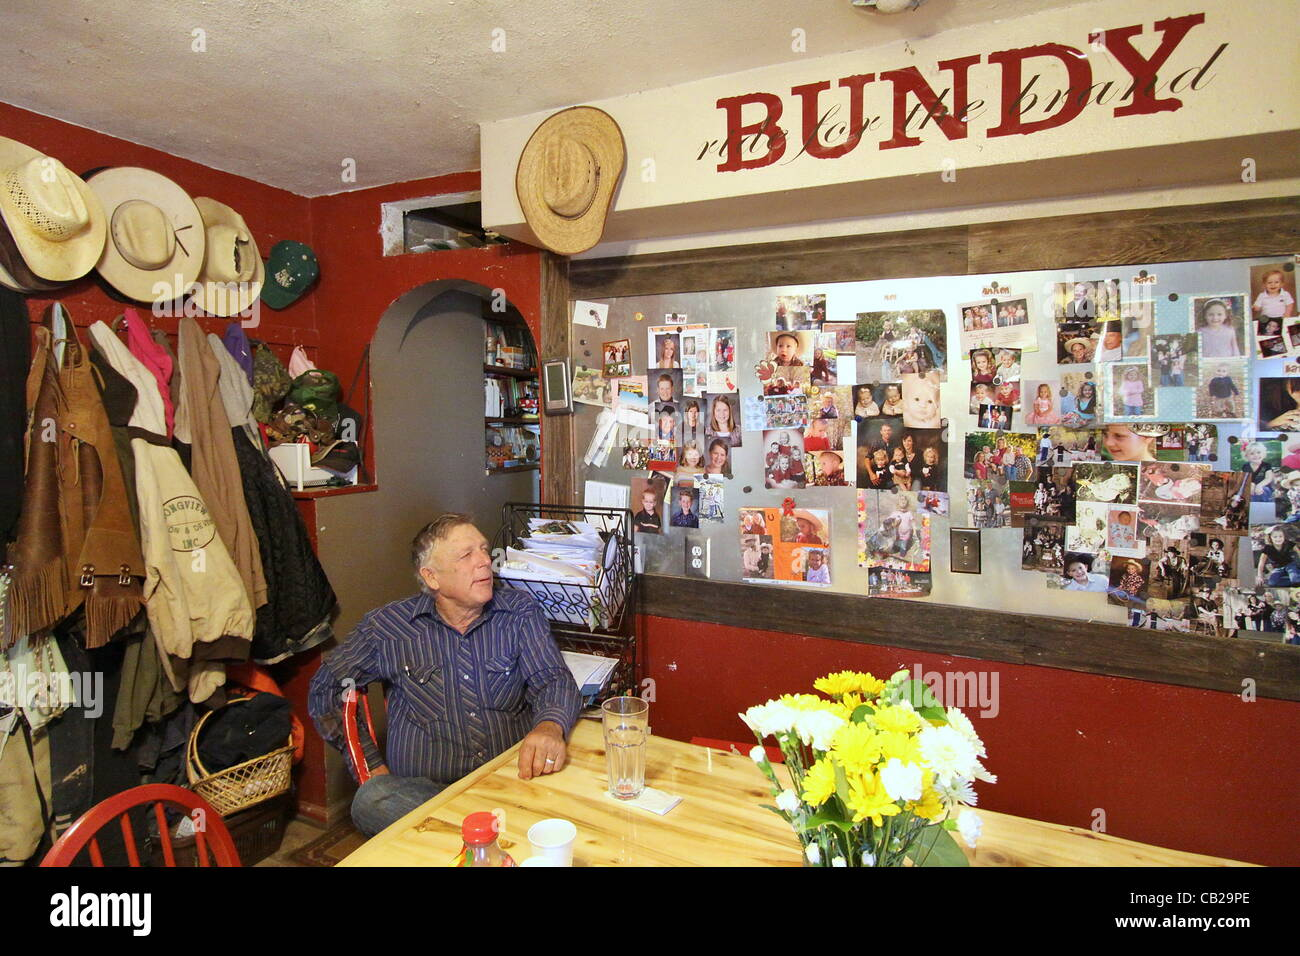 May 16, 2012 - Riverside, NV, U.S - With photos of his large family covering the wall, Cliven Bundy sits in the - Stock Image